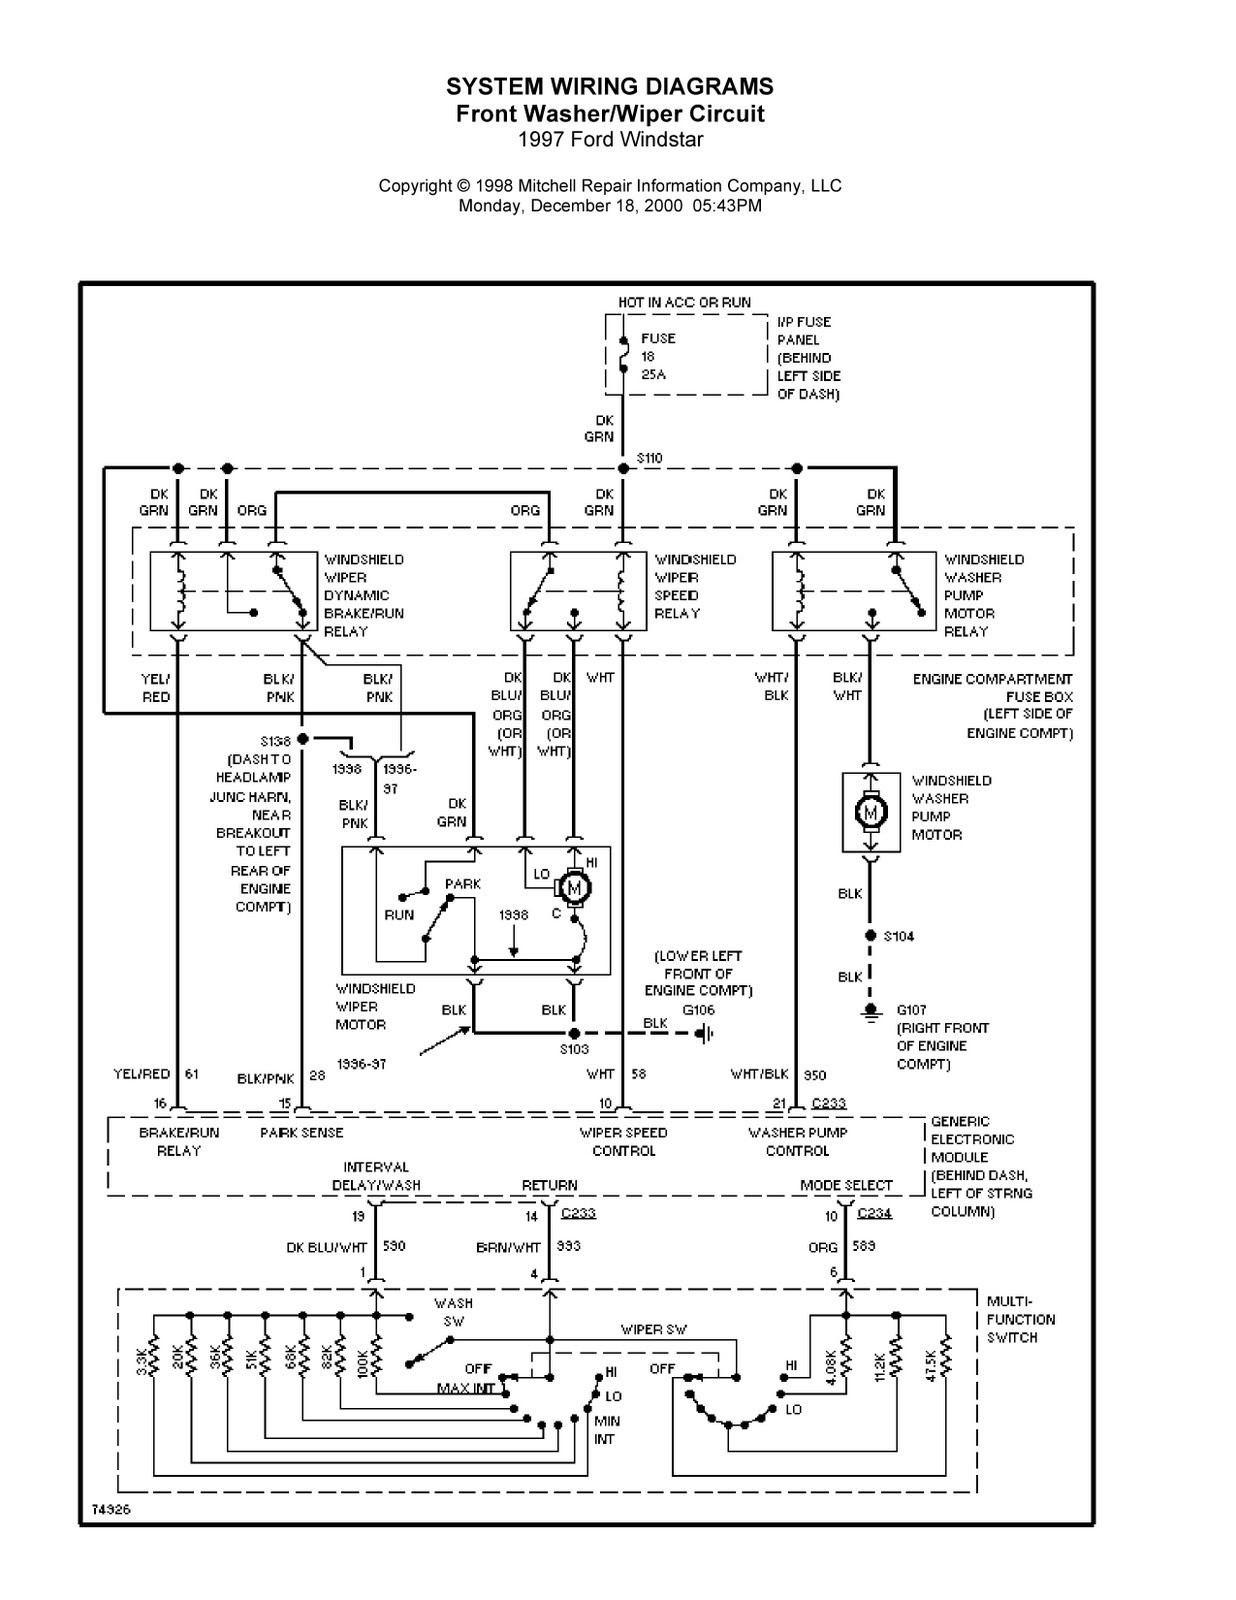 hight resolution of wiring diagram for 2001 windstar wiring diagram megawiring diagram for ford windstar wiring diagram inside wiring